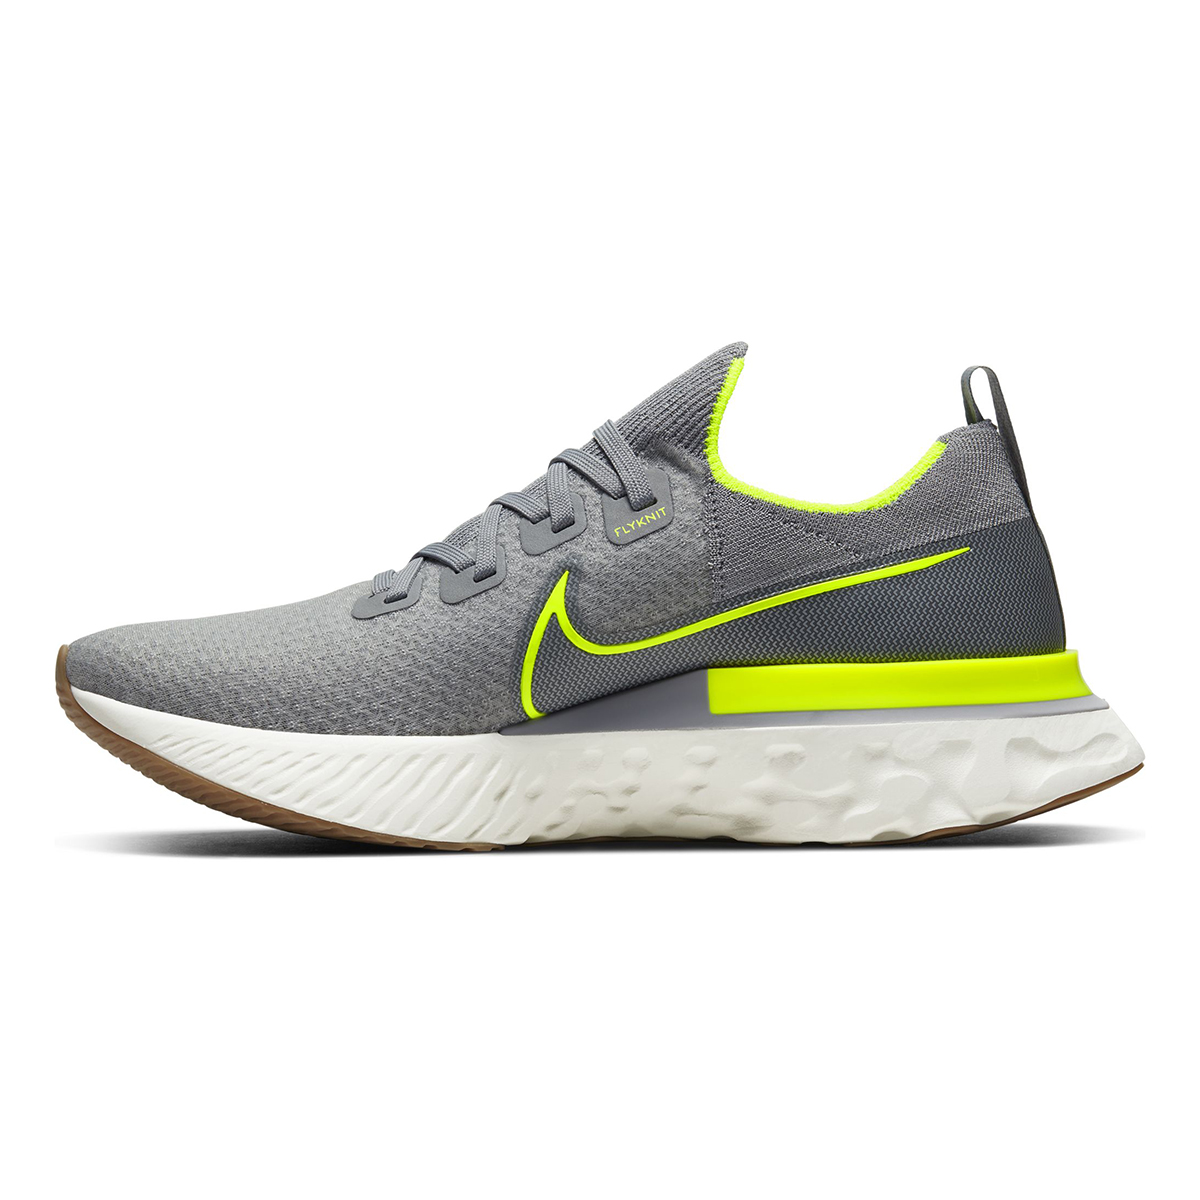 Men's Nike React Infinity Run Flyknit Running Shoe - Color: Particle Grey/Wolf Grey/Sail/Volt (Regular Width) - Size: 6, Particle Grey/Wolf Grey/Sail/Volt, large, image 2